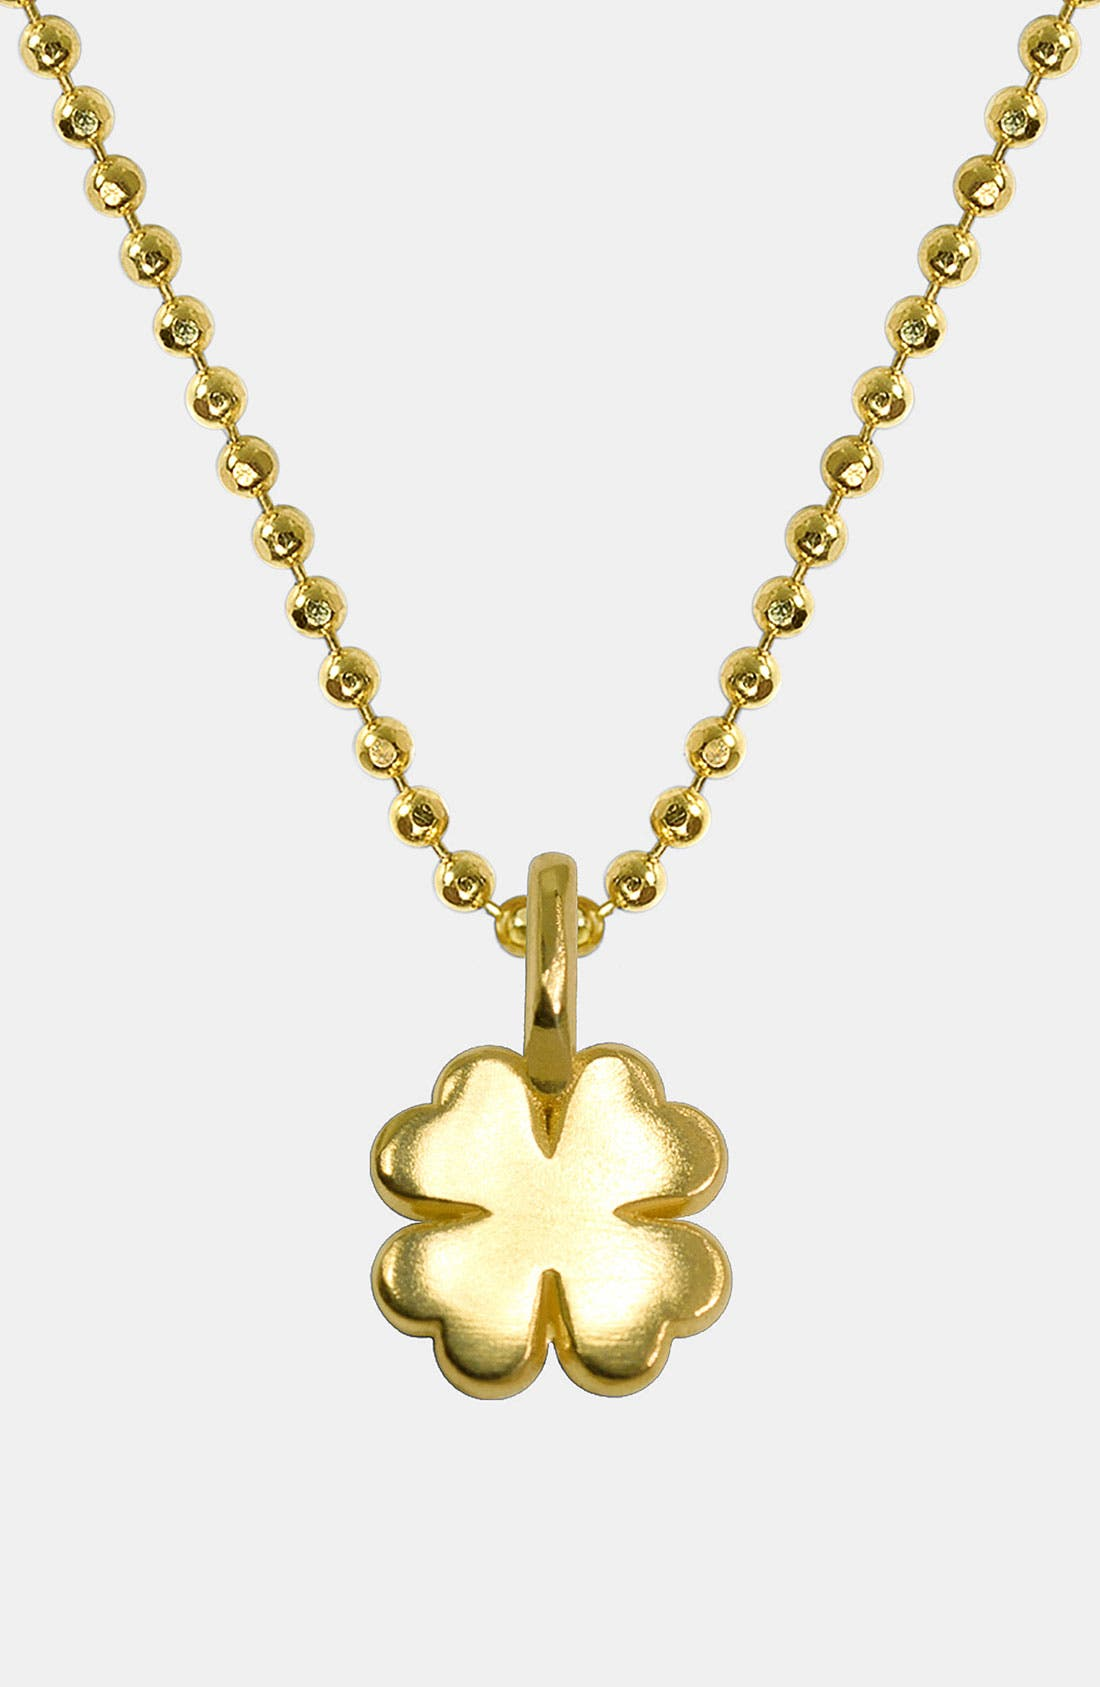 Alternate Image 1 Selected - Alex Woo 'Mini Clover' 14k Gold Pendant Necklace